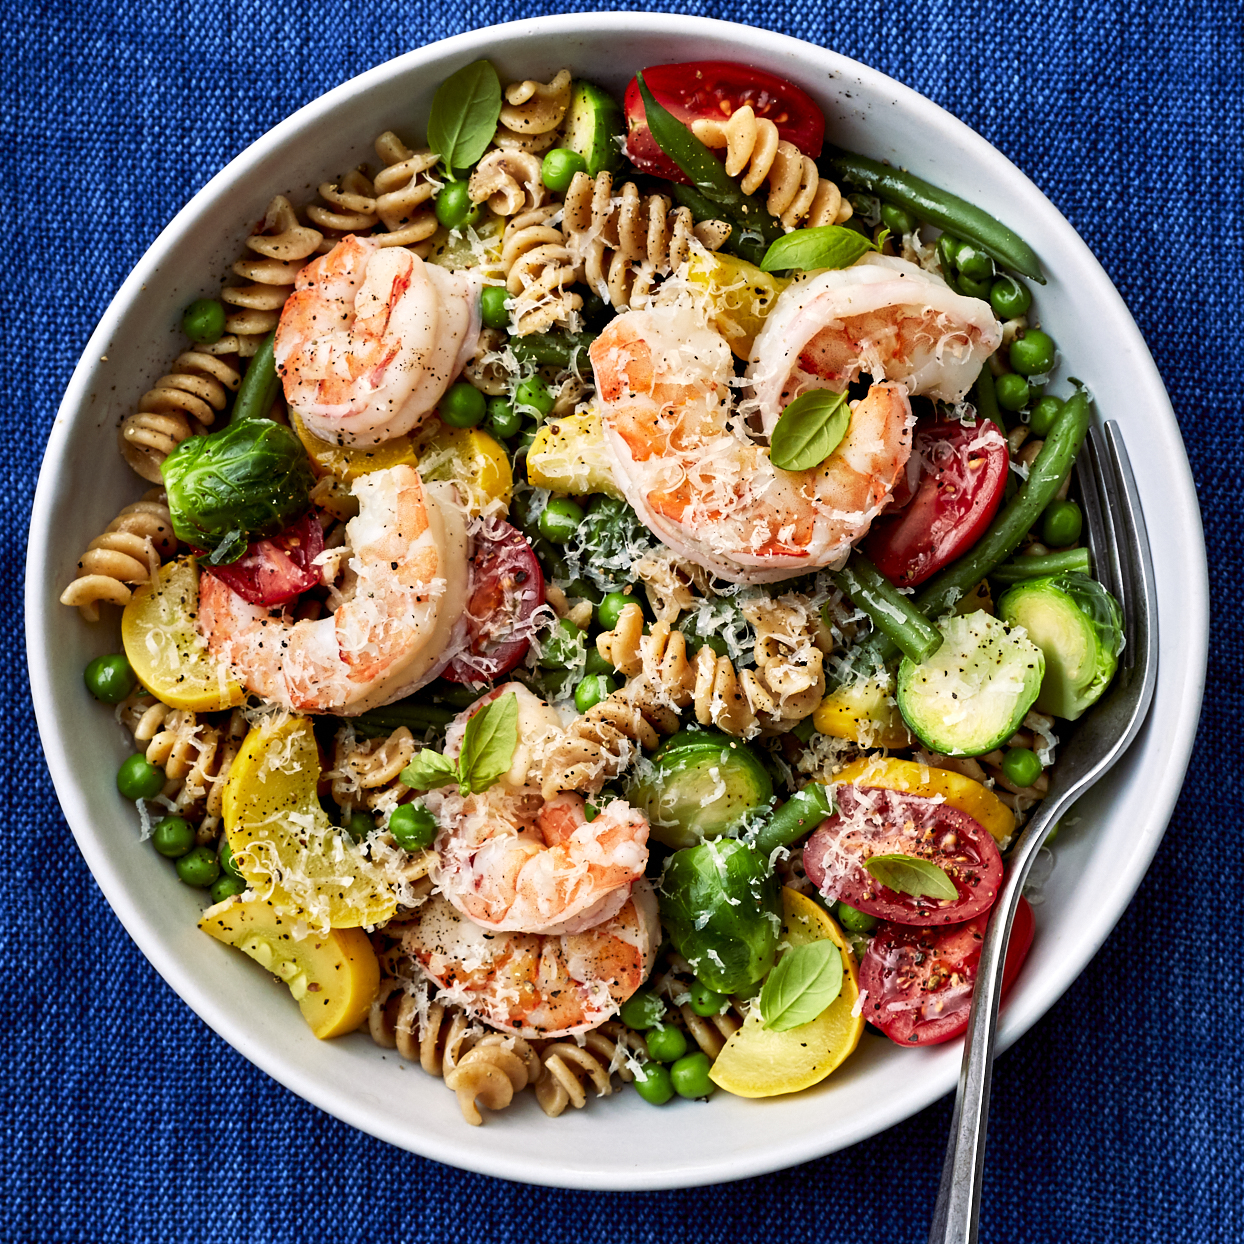 Forget the fuss: this one-pot meal has it all--garlic, shrimp, vegetables and plenty of fresh basil. Cleanup after this healthy dinner is a breeze and it's quick too, done in less than 30 minutes. Once you get comfortable with this weeknight recipe, get creative by substituting zucchini for the summer squash and swapping out the Brussels sprouts for broccoli or cauliflower. Source: EatingWell.com, December 2019